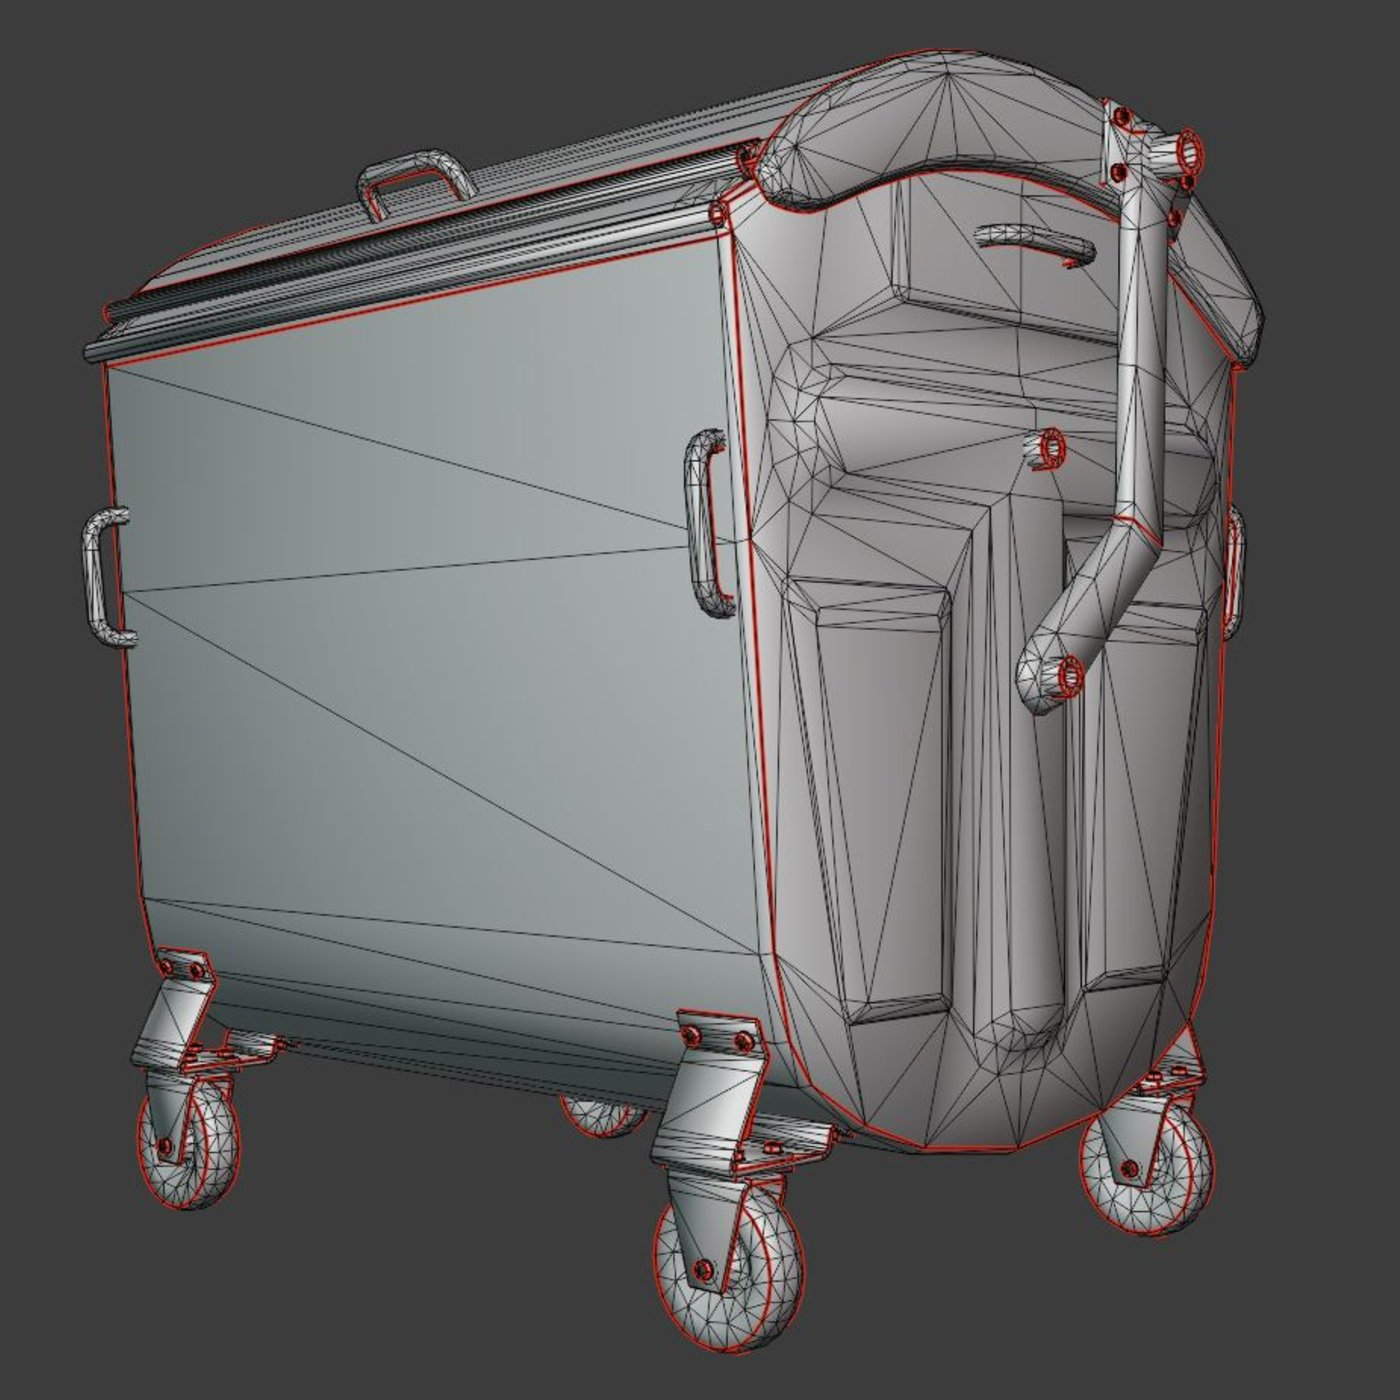 Old Metal Trash Container Re-Textured in Blender-2.831